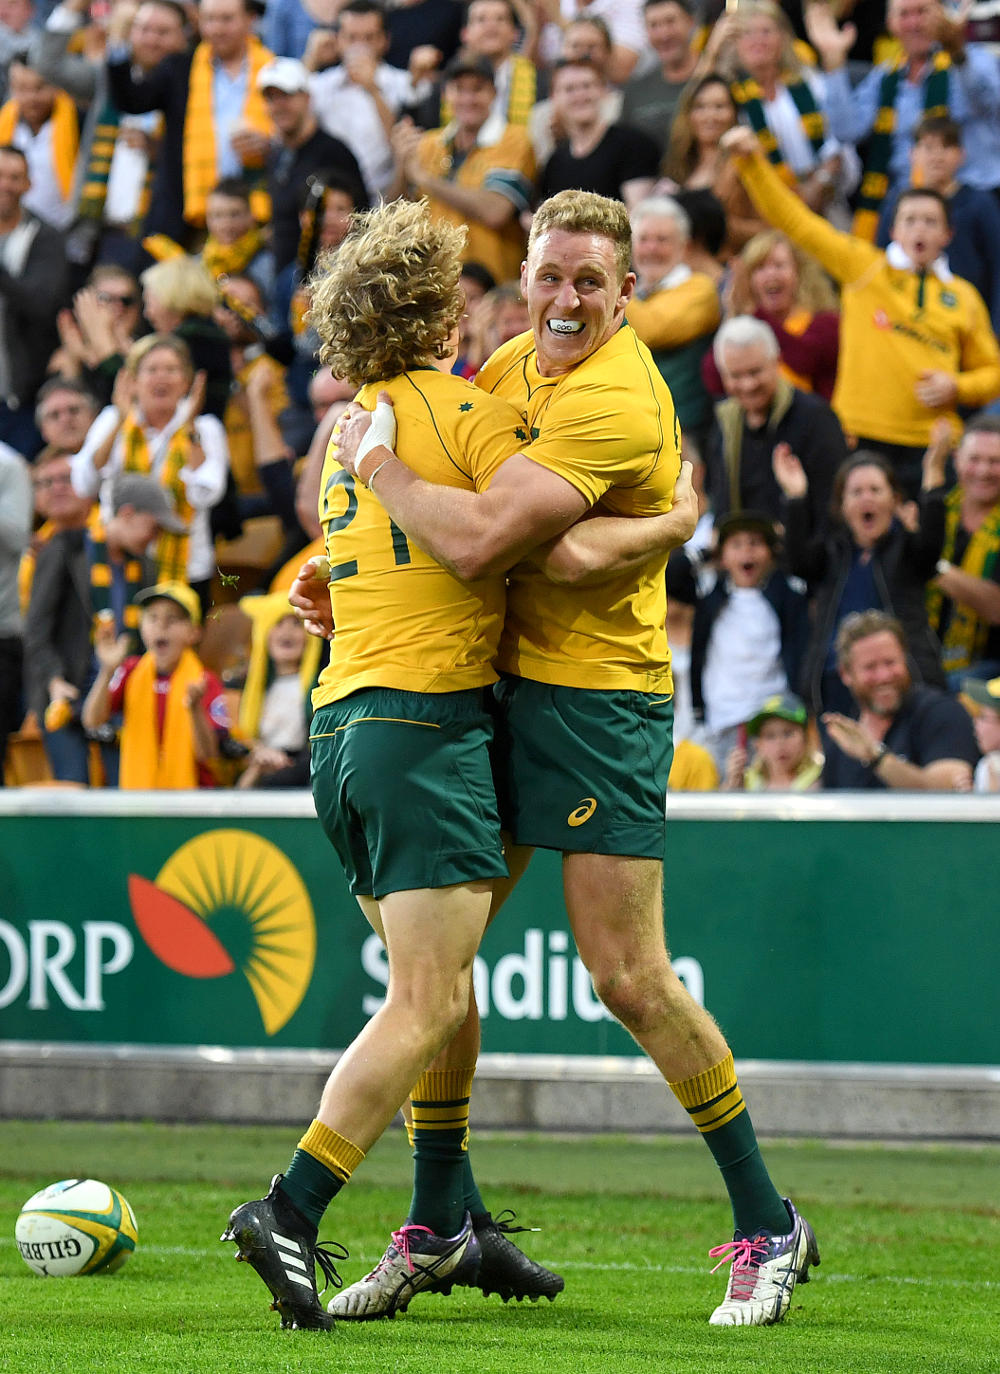 Reece Hodge Australia Rugby Union Wallabies 2017 tall